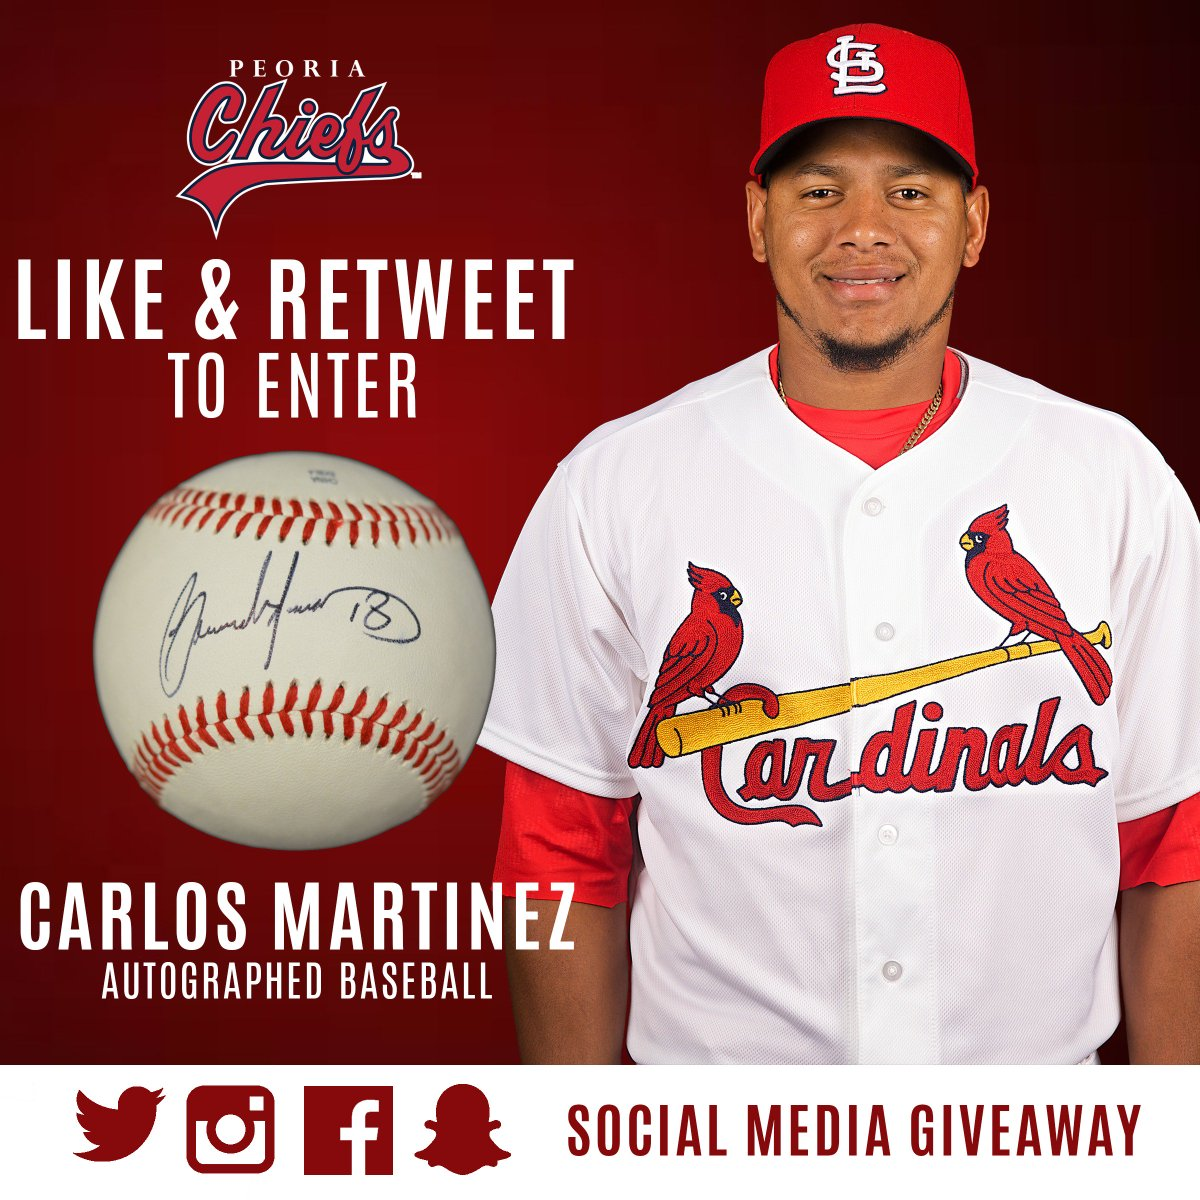 Follow us as the season approaches. Like & retweet for a chance to win a Carlos Martinez autographed baseball. https://t.co/MWoQvKxLXS